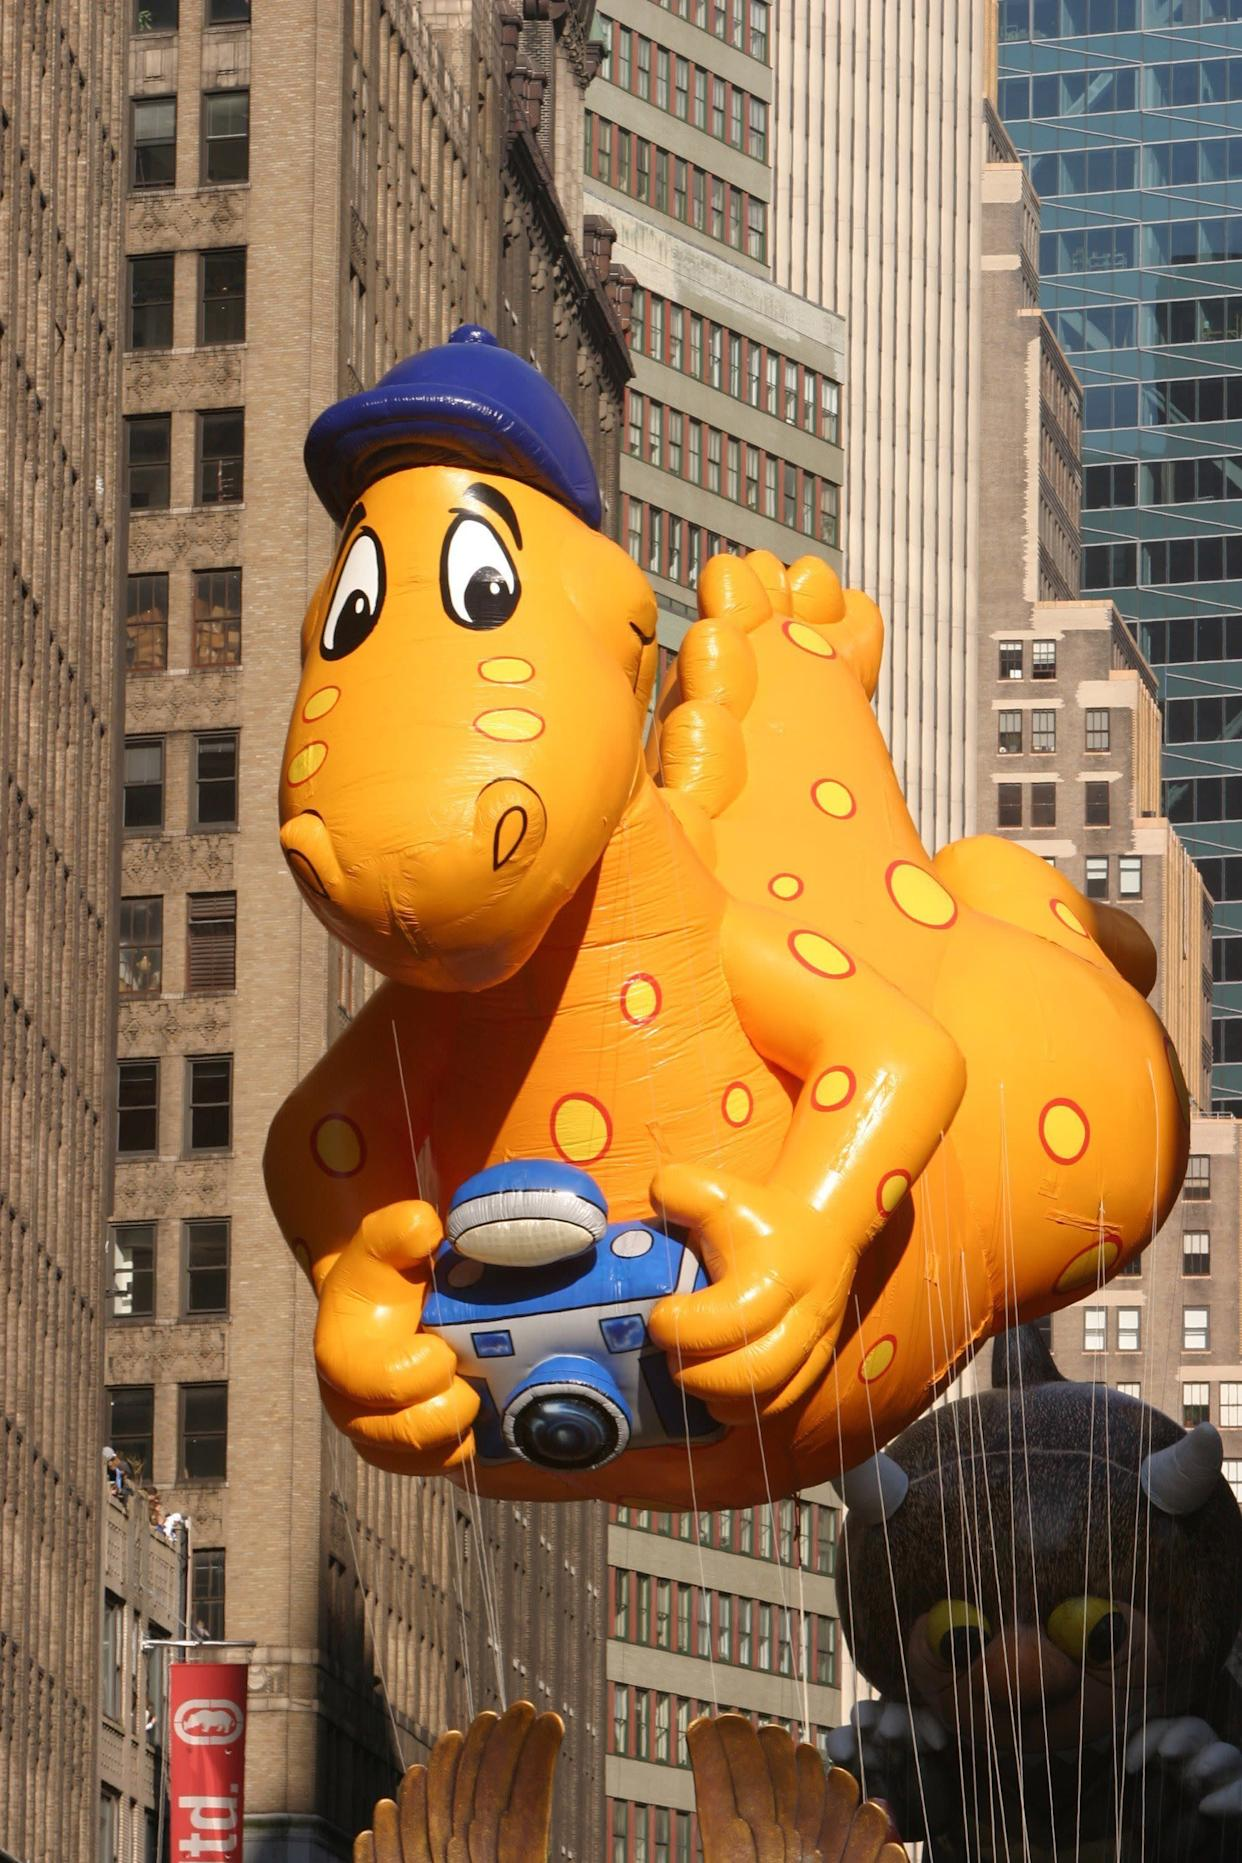 """This dino is solely responsible for kids of the 2000s asking their parents for a <a href=""""http://www.youtube.com/watch?v=SmGl2Qx1uDQ"""" rel=""""nofollow noopener"""" target=""""_blank"""" data-ylk=""""slk:cheese slip n' slide"""" class=""""link rapid-noclick-resp"""">cheese slip n' slide</a>."""